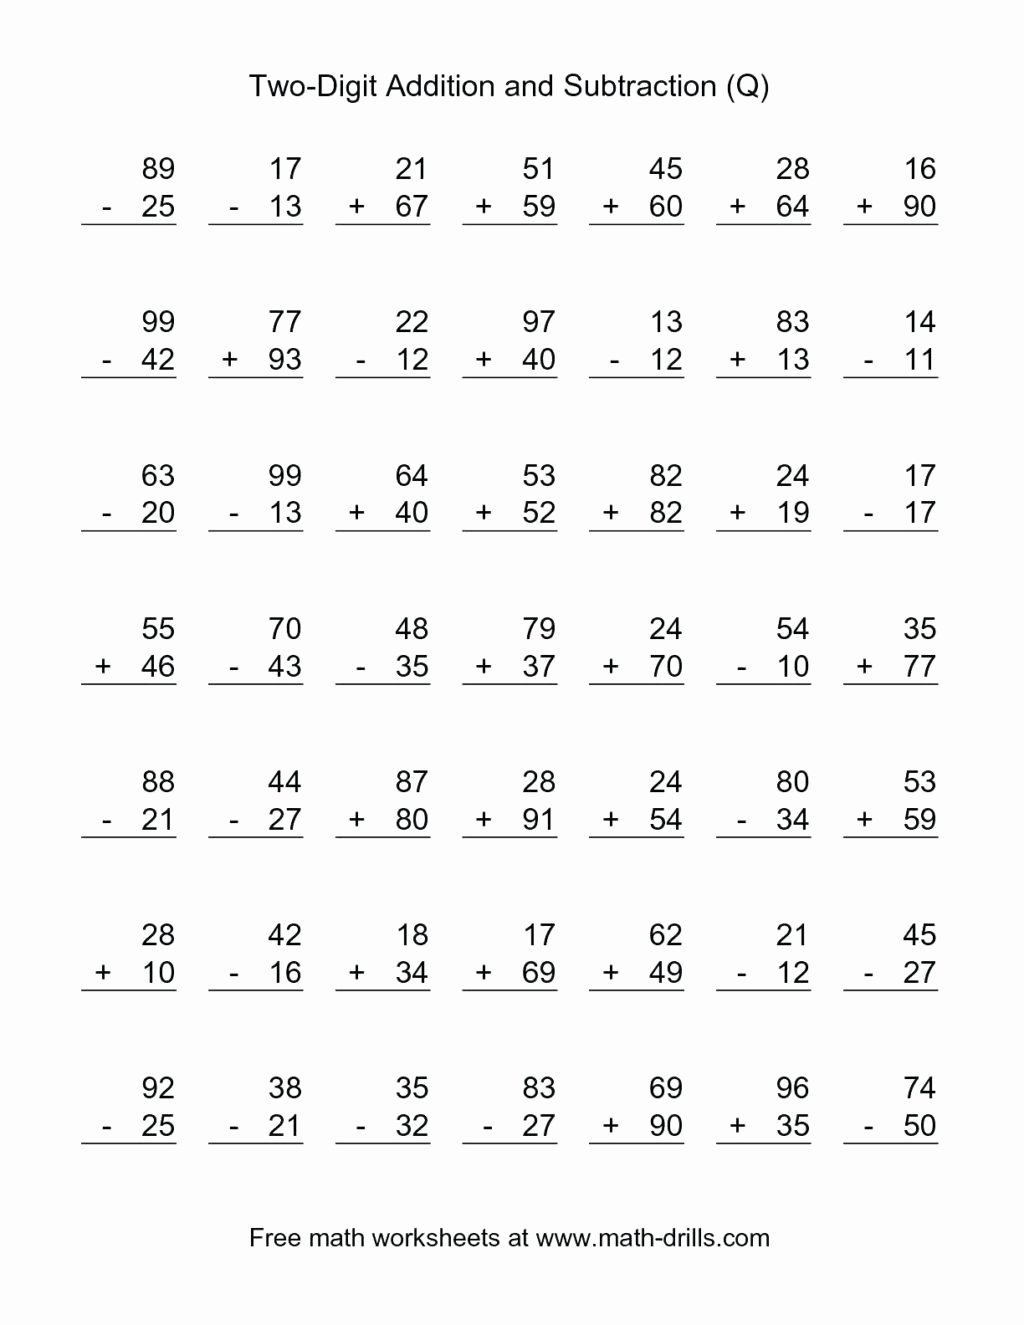 Multiplication Worksheets Grade 2 Printable Unique Worksheet Printable Math Worksheets for Grade Tremendous